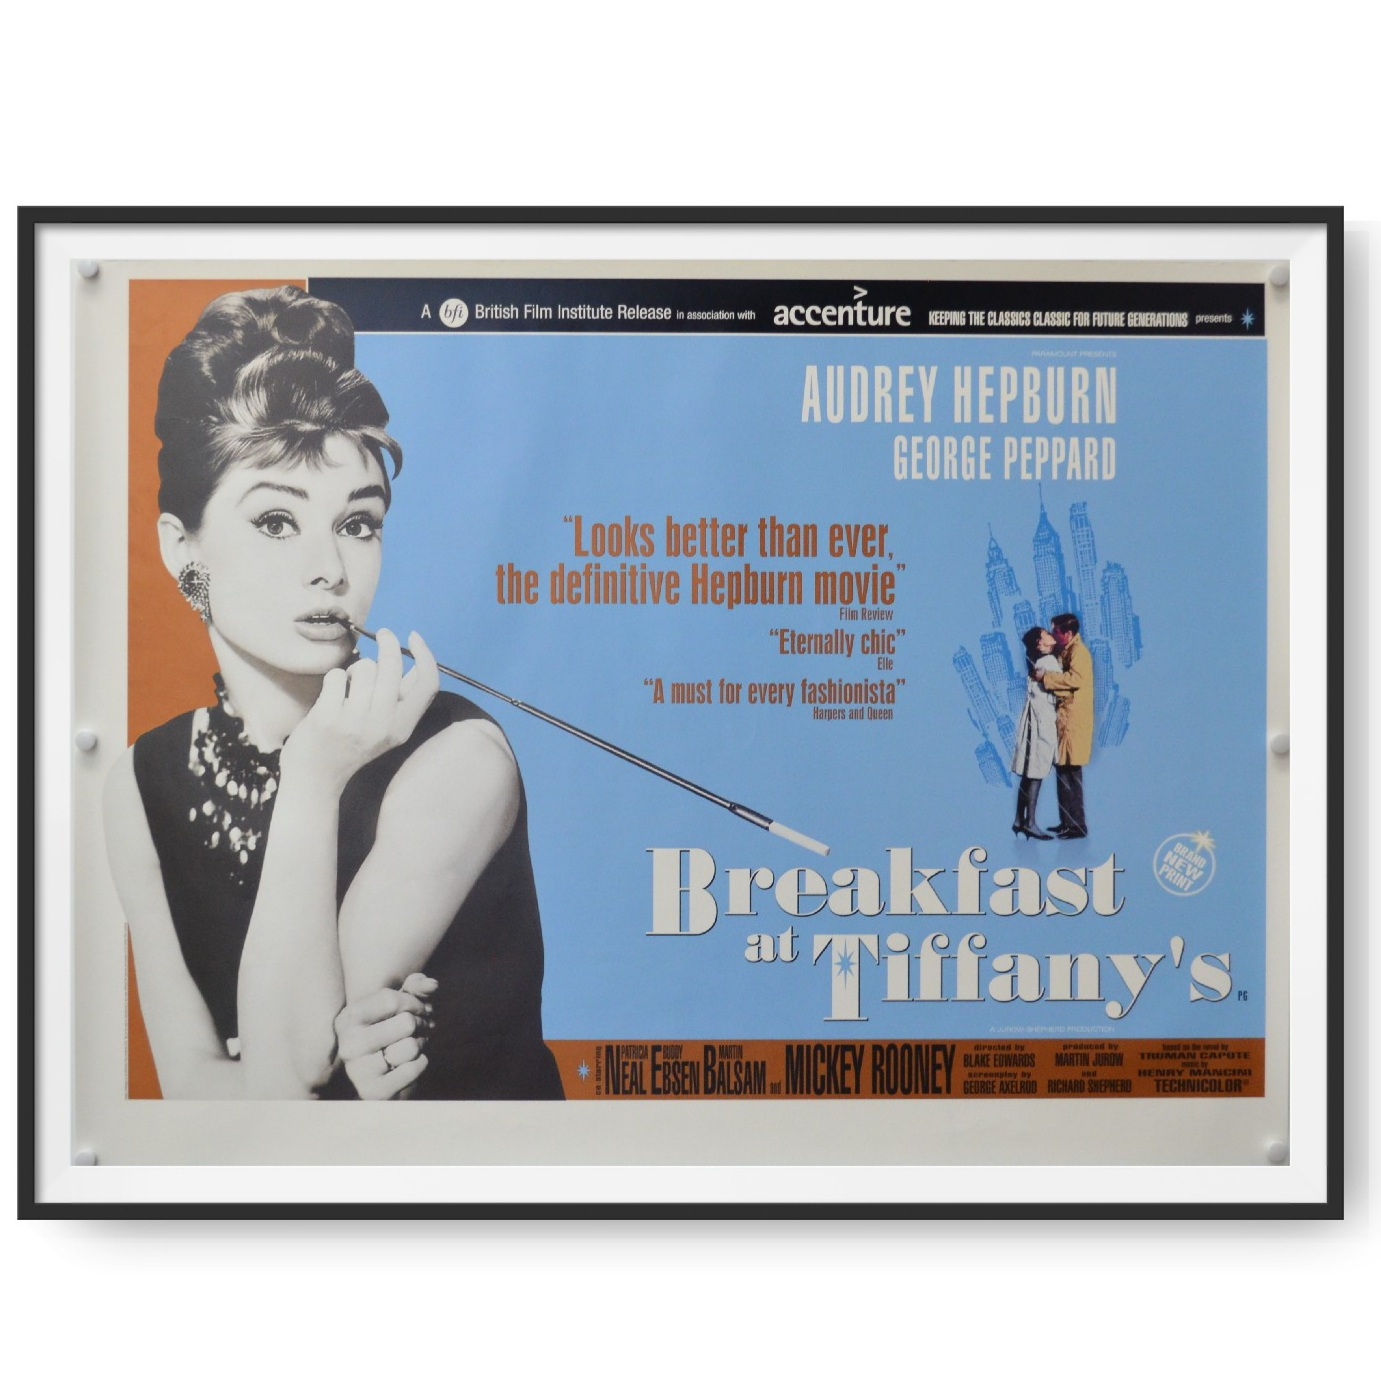 This is framed UK quad poster for a 2001 rerelease of Breakfast at Tiffany's. Audrey Hepburn features prominently in the image.